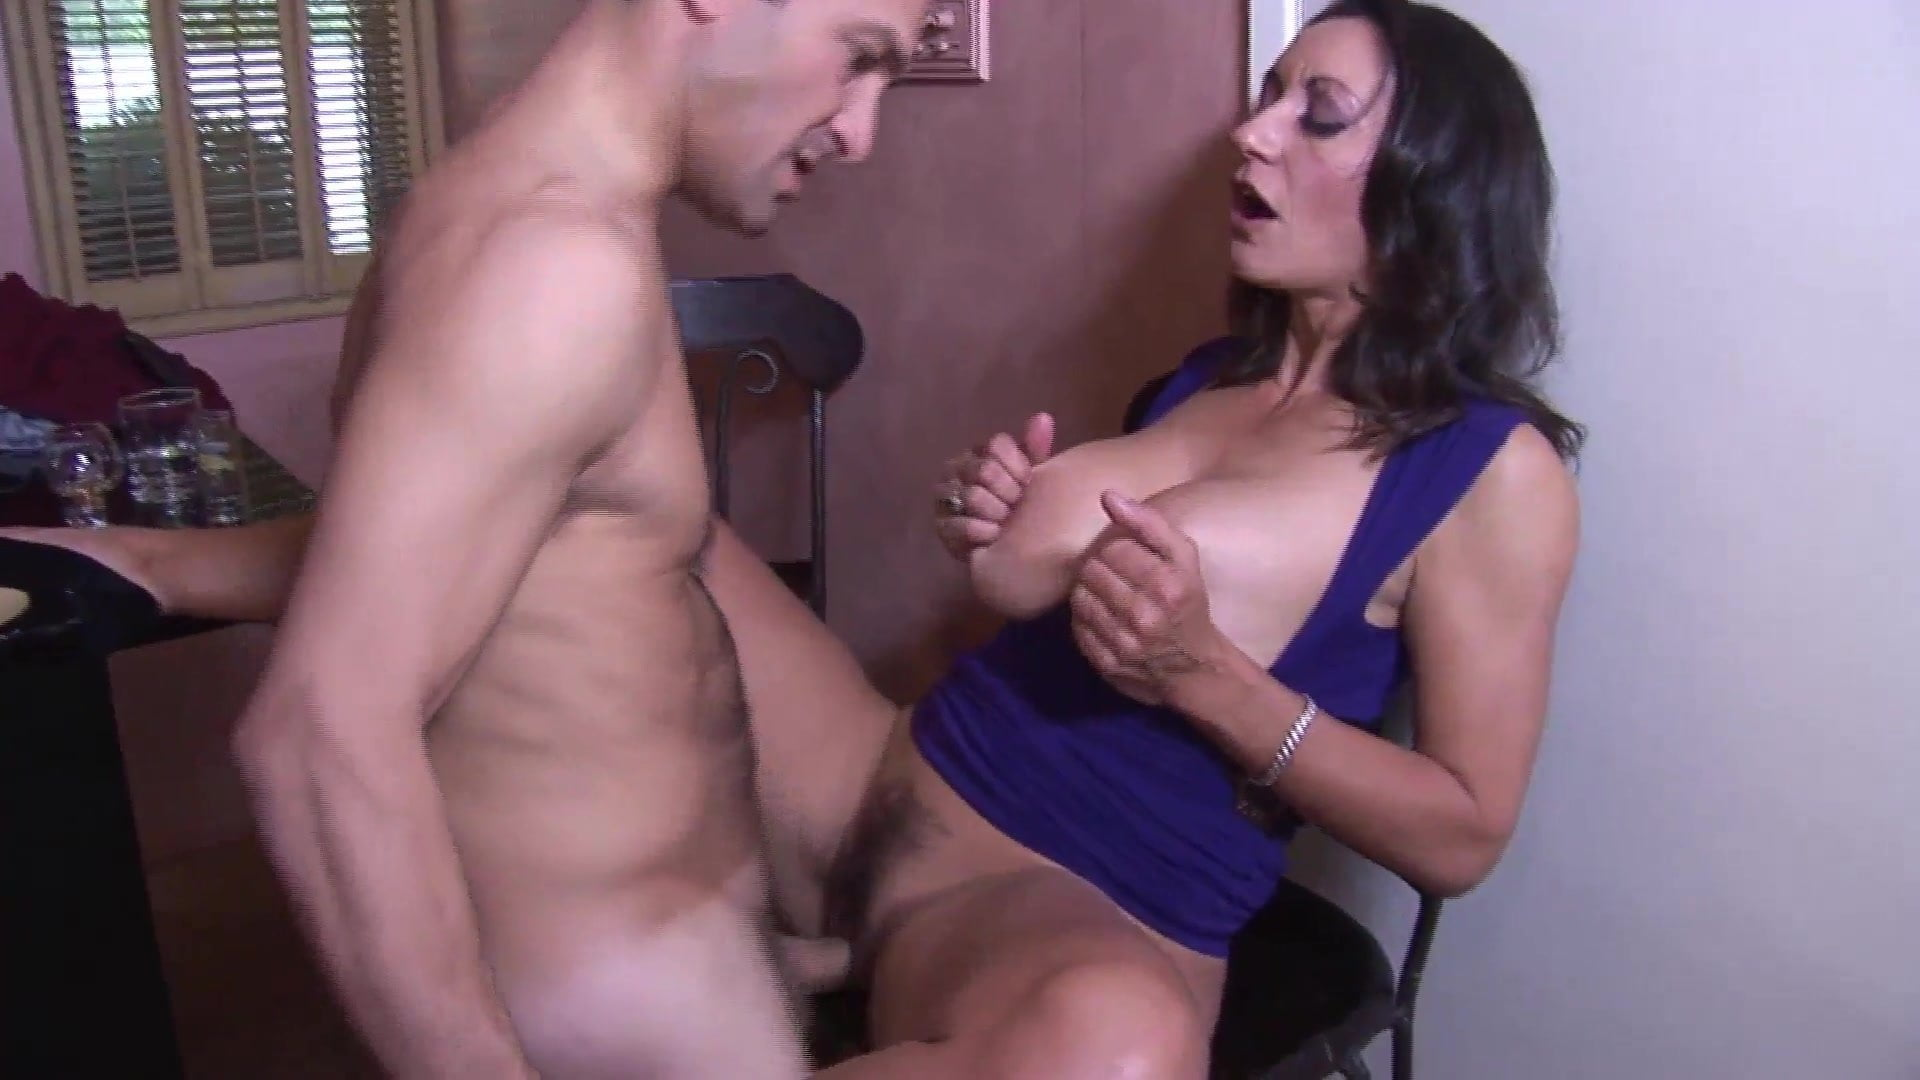 Hairy Interracial Creampie Hd